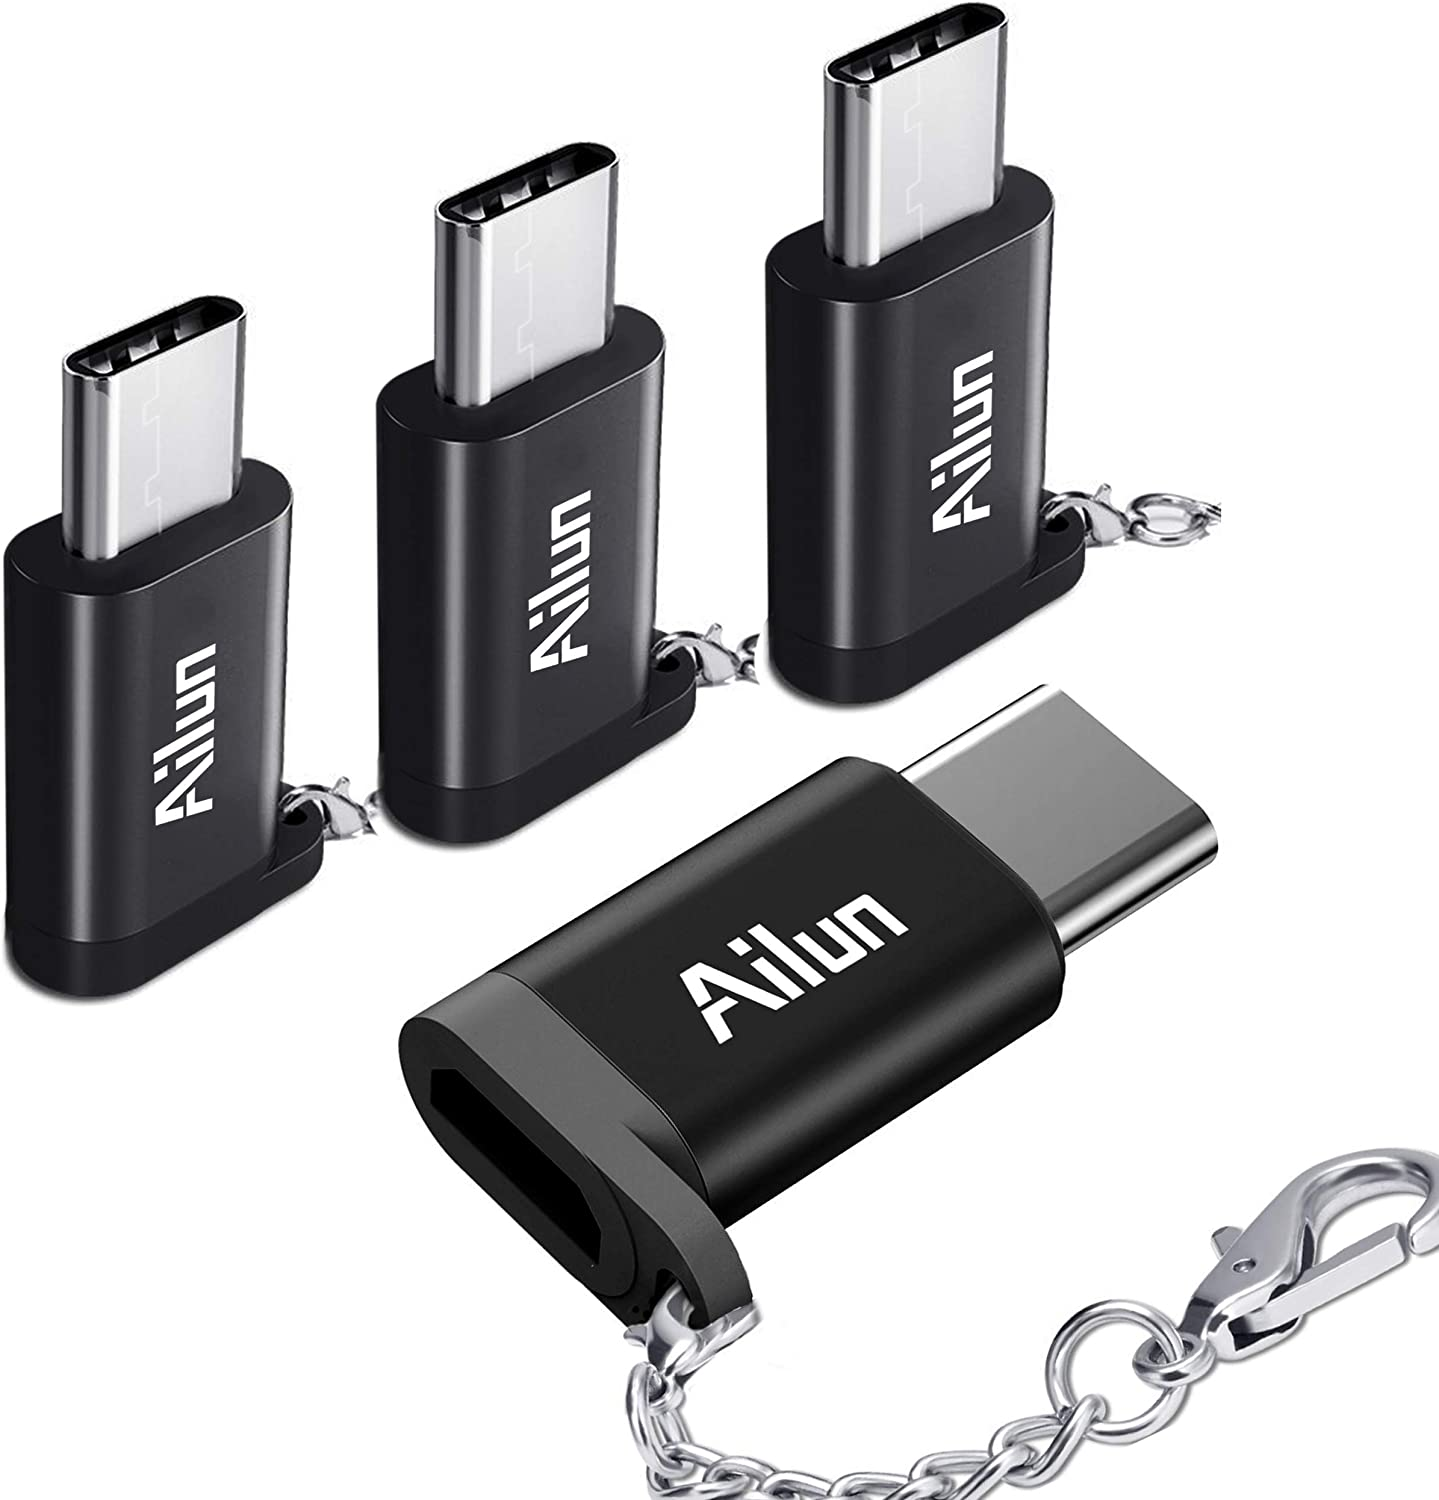 USB Type C Adapter 4 Pack Ailun USB C to Micro USB Convert Connector Compact with Keychain Sync and Charge for Galaxy s20, s20+ S20Ultra S10 S9 Plus MacBook ChromeBook More Type C Port Devices